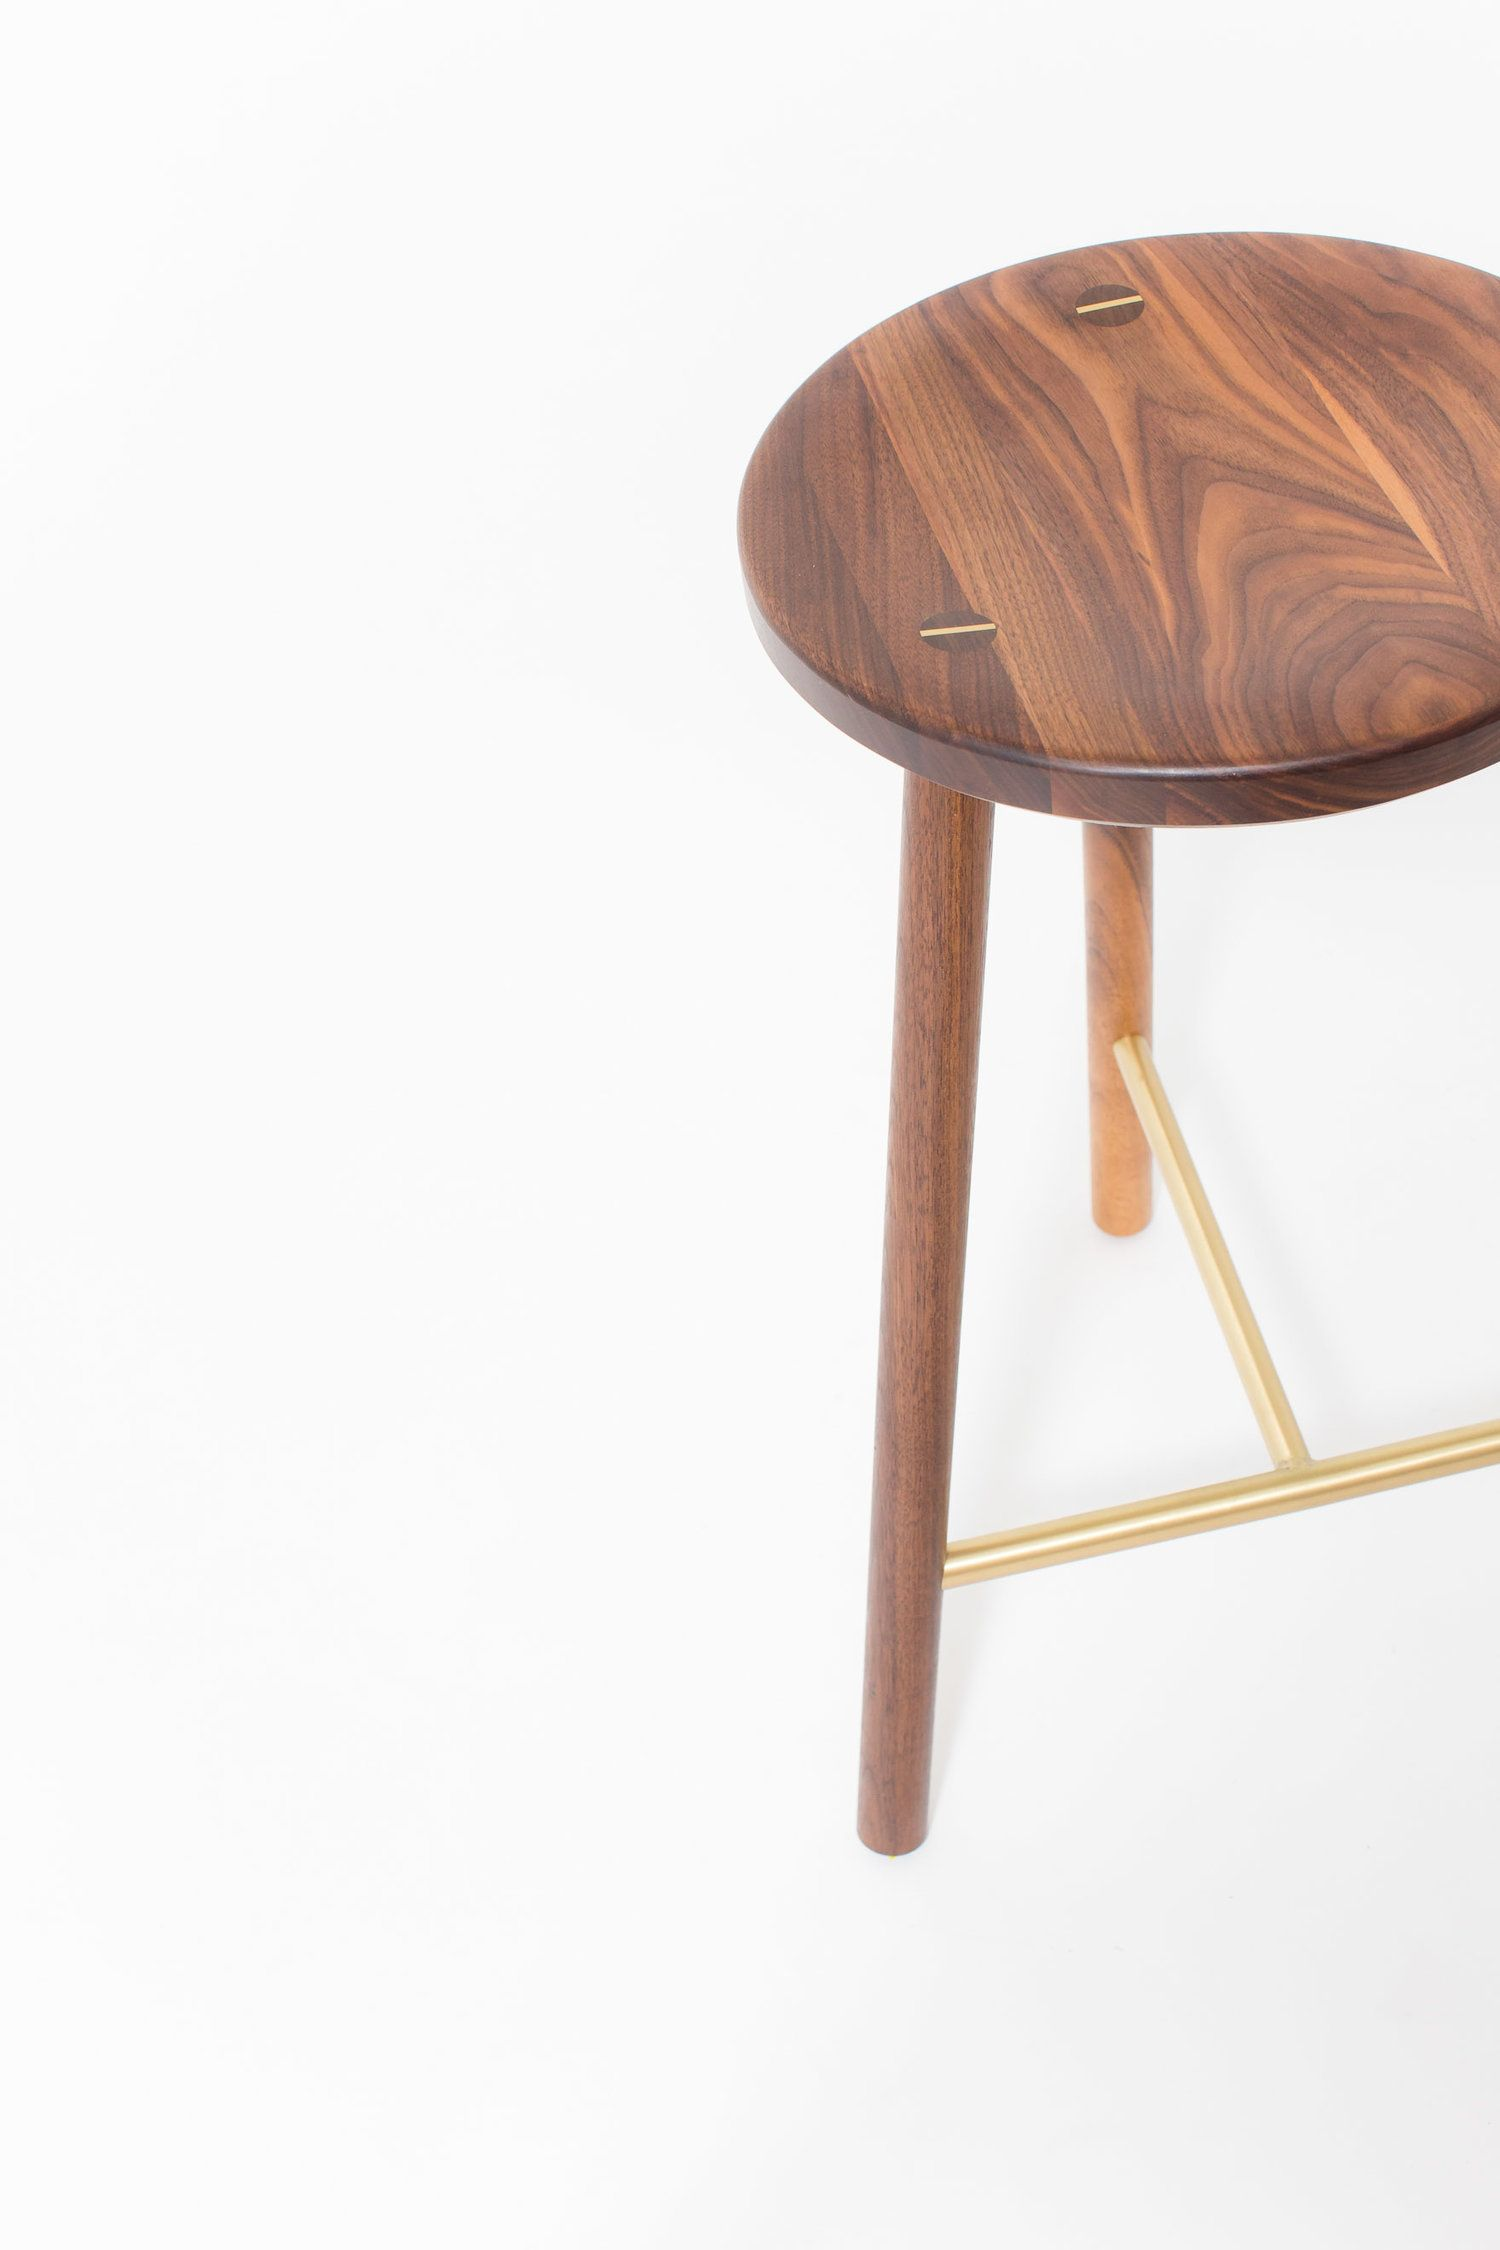 """Scout"" Stool In Walnut And Satin Brushed Brass By Steven"